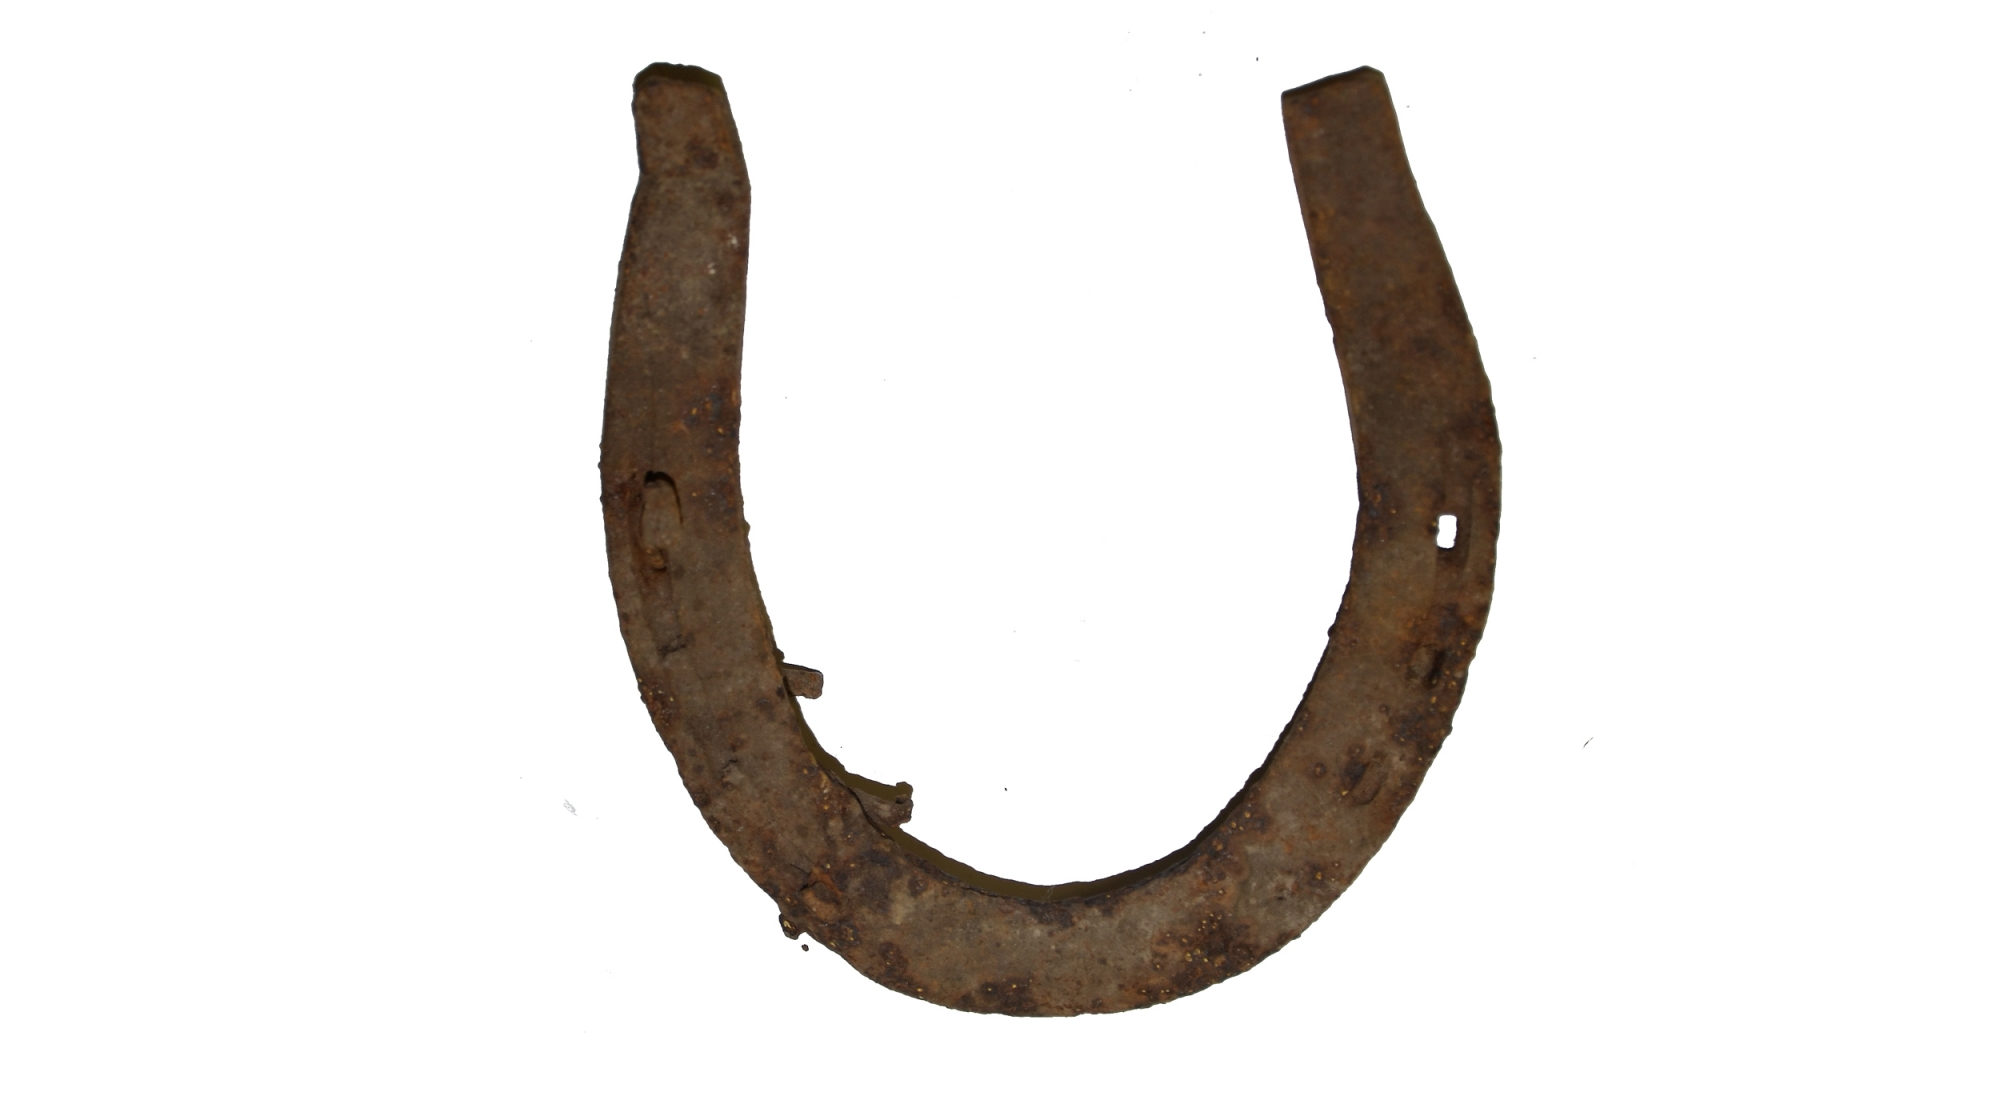 US/CS 19TH CENTURY HORSESHOE RECOVERED ON THE SHERFY FARM, GETTYSBURG